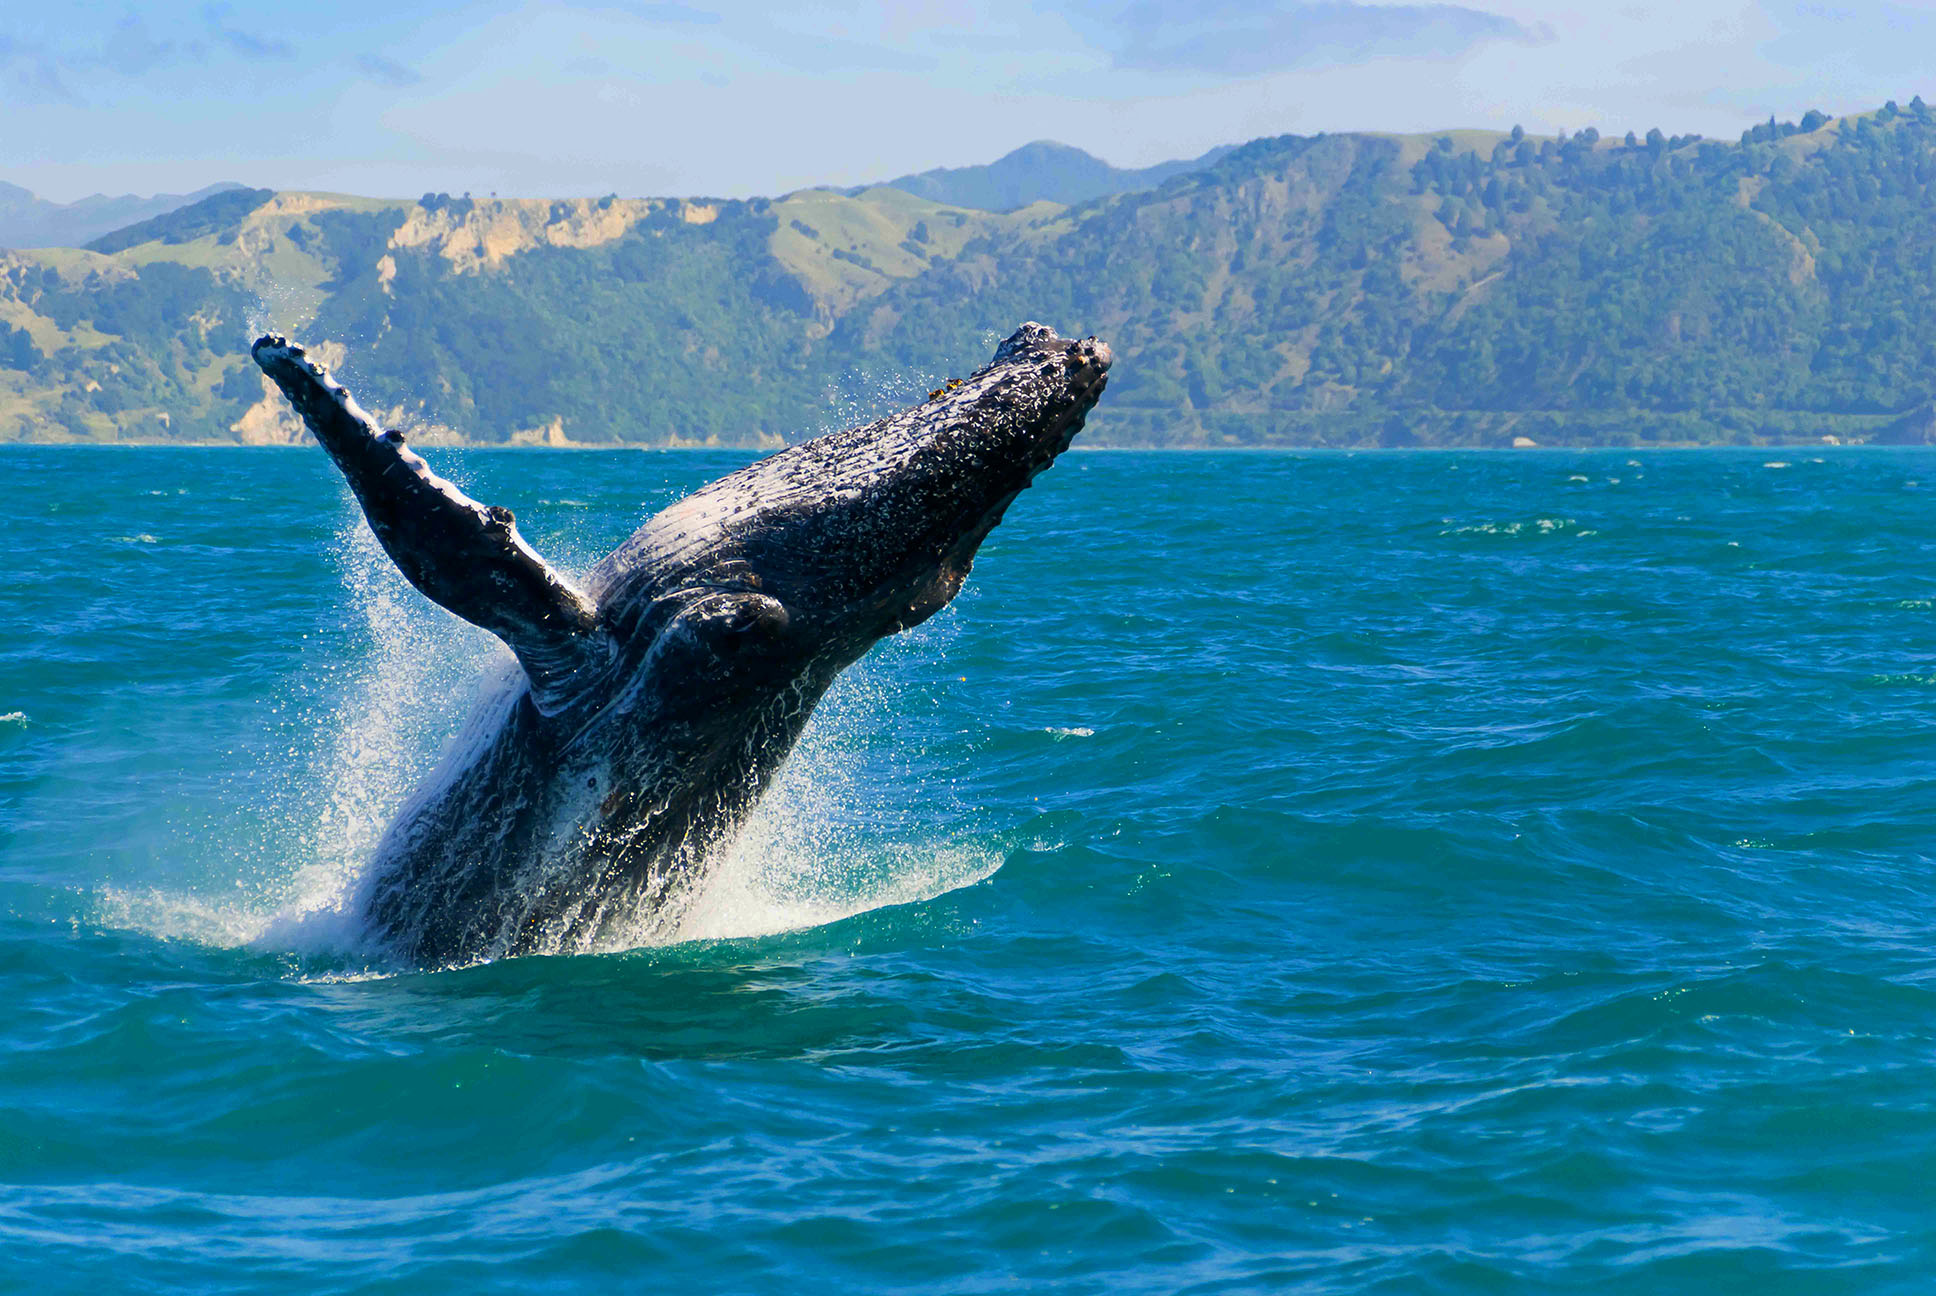 WHALE WATCH TOURS